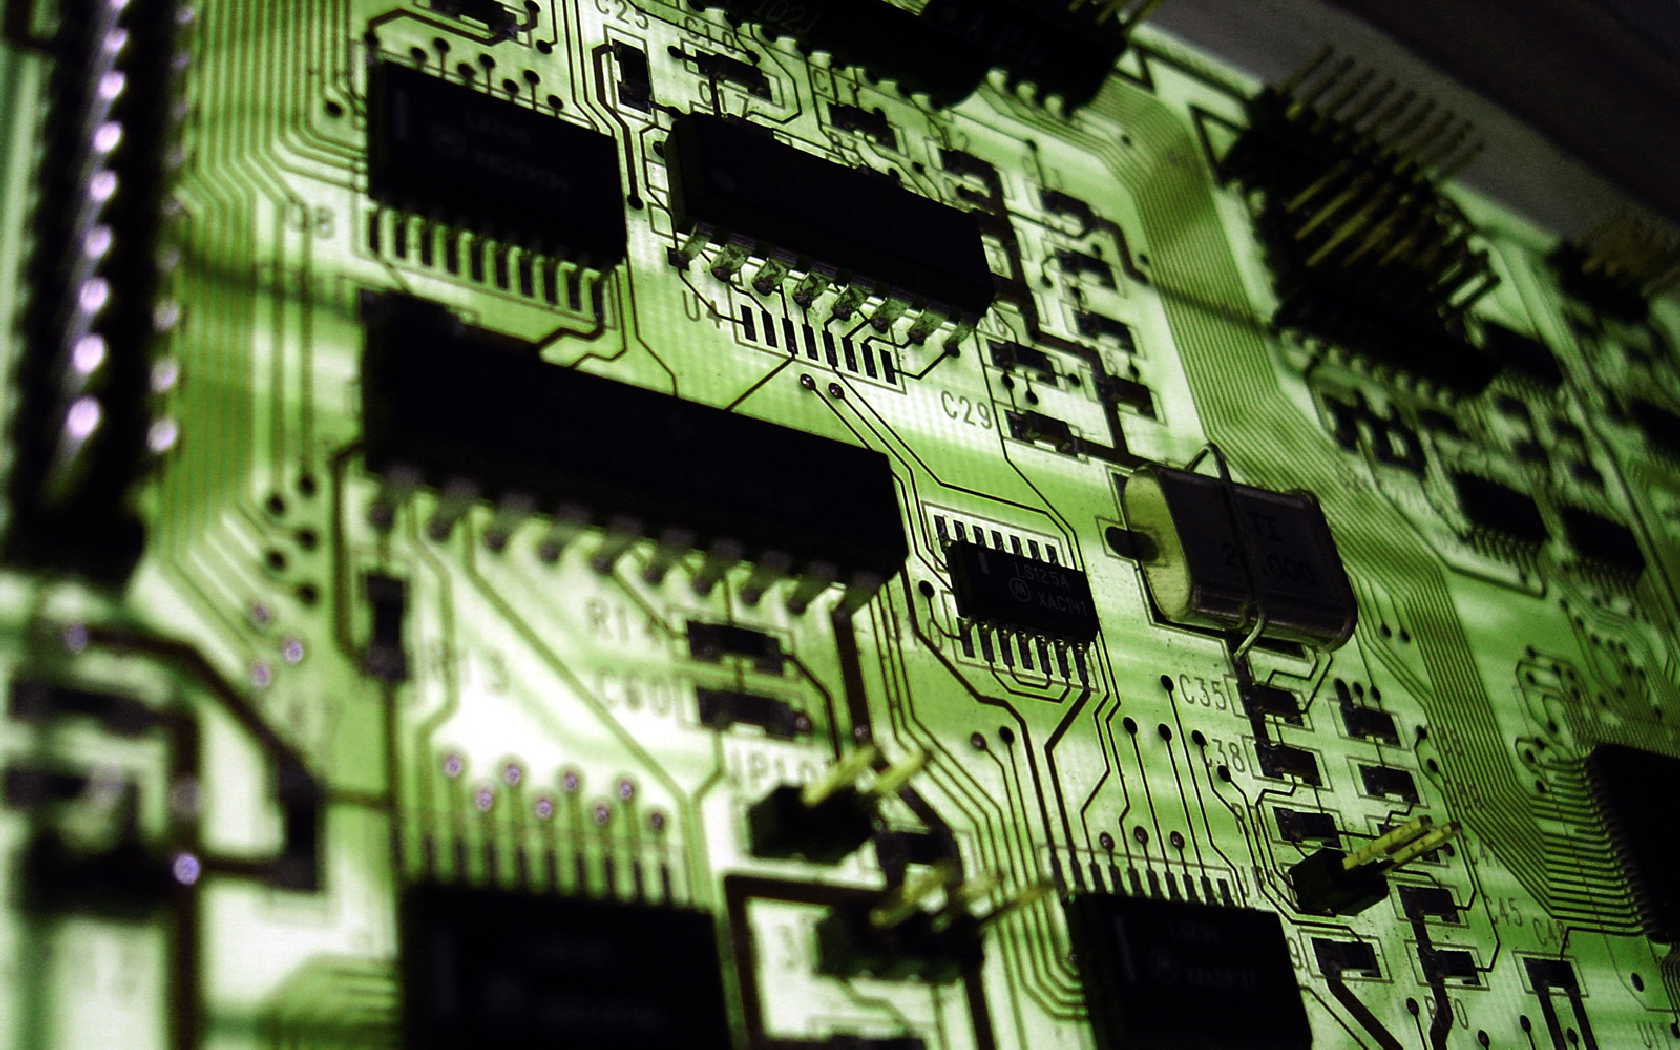 Picture of a computer component